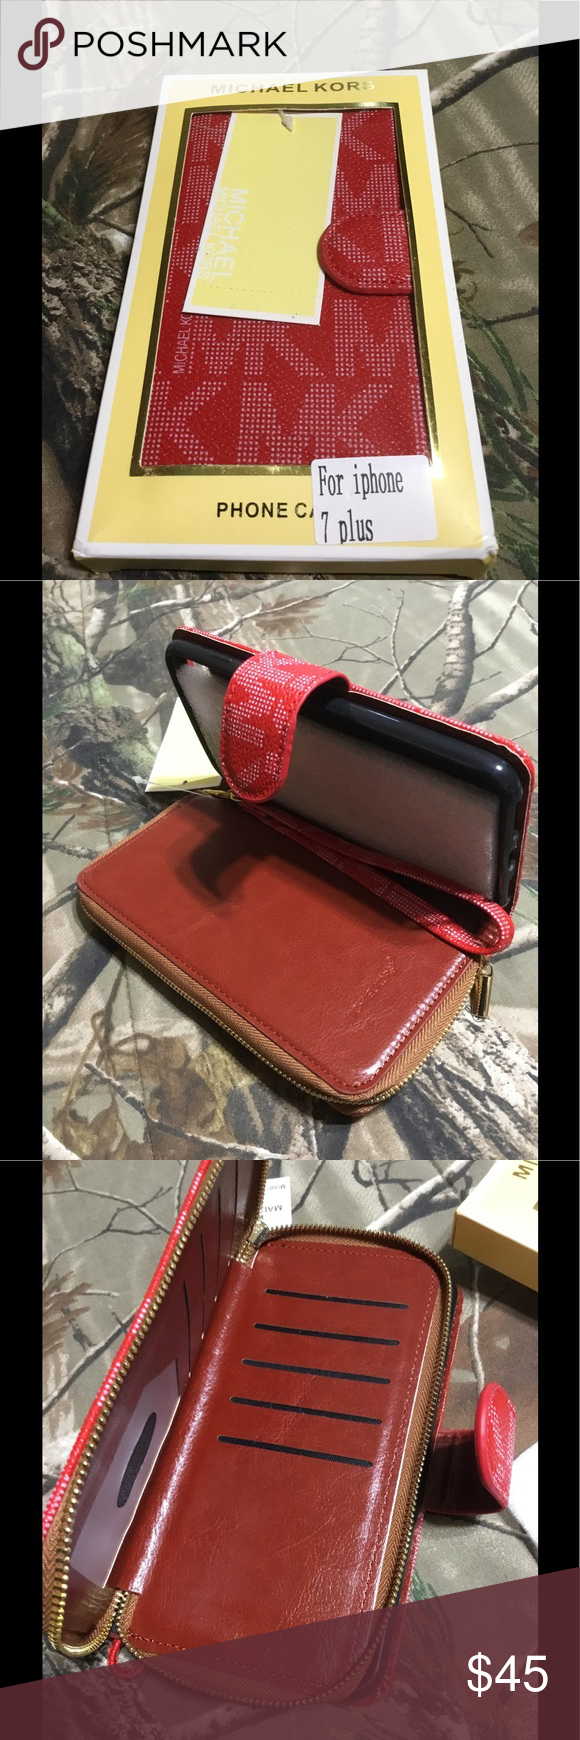 MK Phone case and wallet for iPhone 7 plus NWT MK phone case and wallet for iPhone 7 plus. Red color Michael Kors Accessories Phone Cases